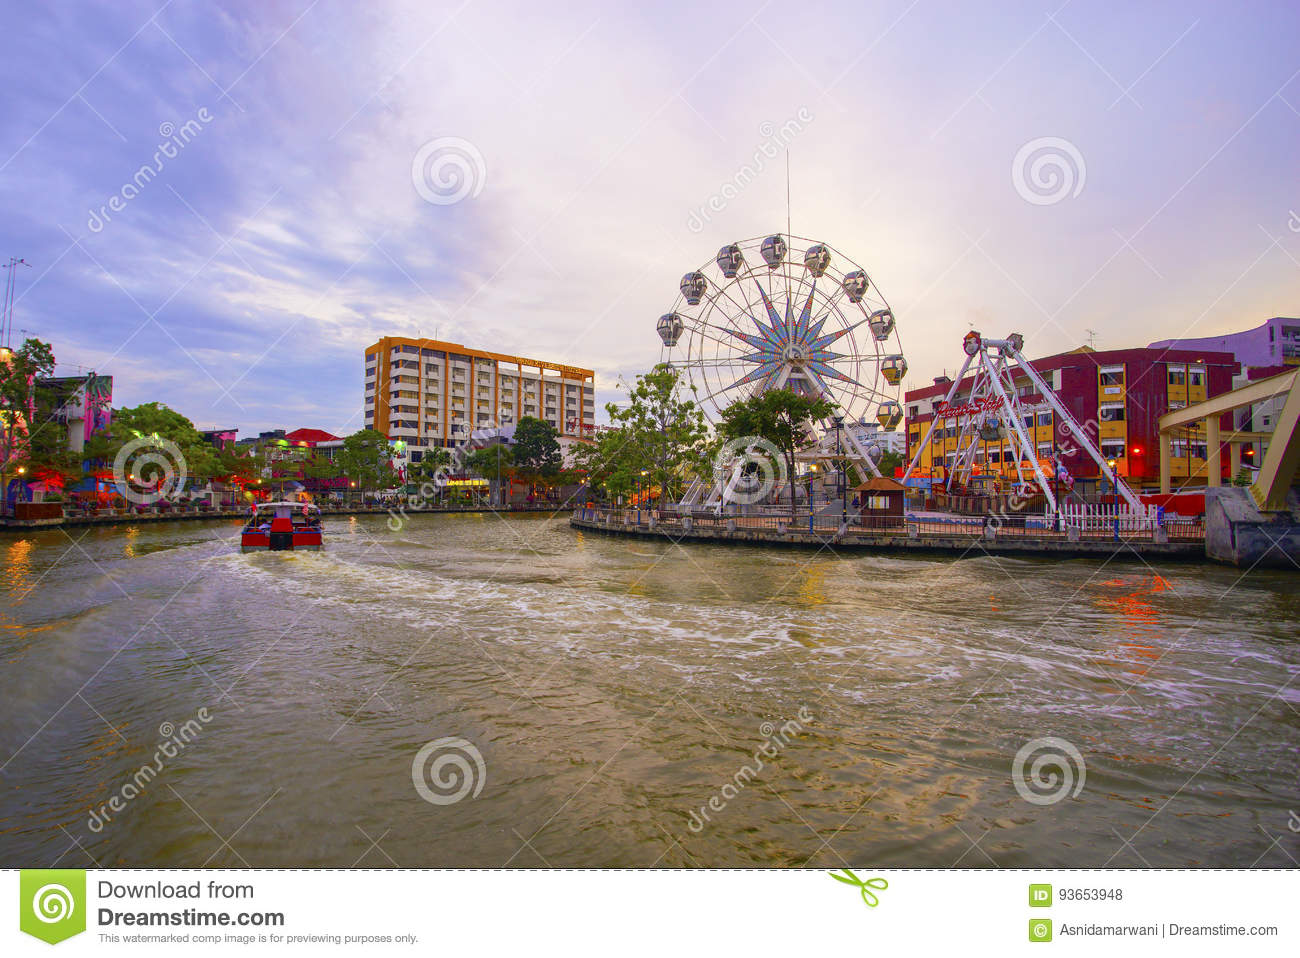 MALAYSIA - MARCH 23: Malacca eye on the banks of Melaka river on MARCH 23, 2017 Malaysia. Malacca has been listed as a UNESCO